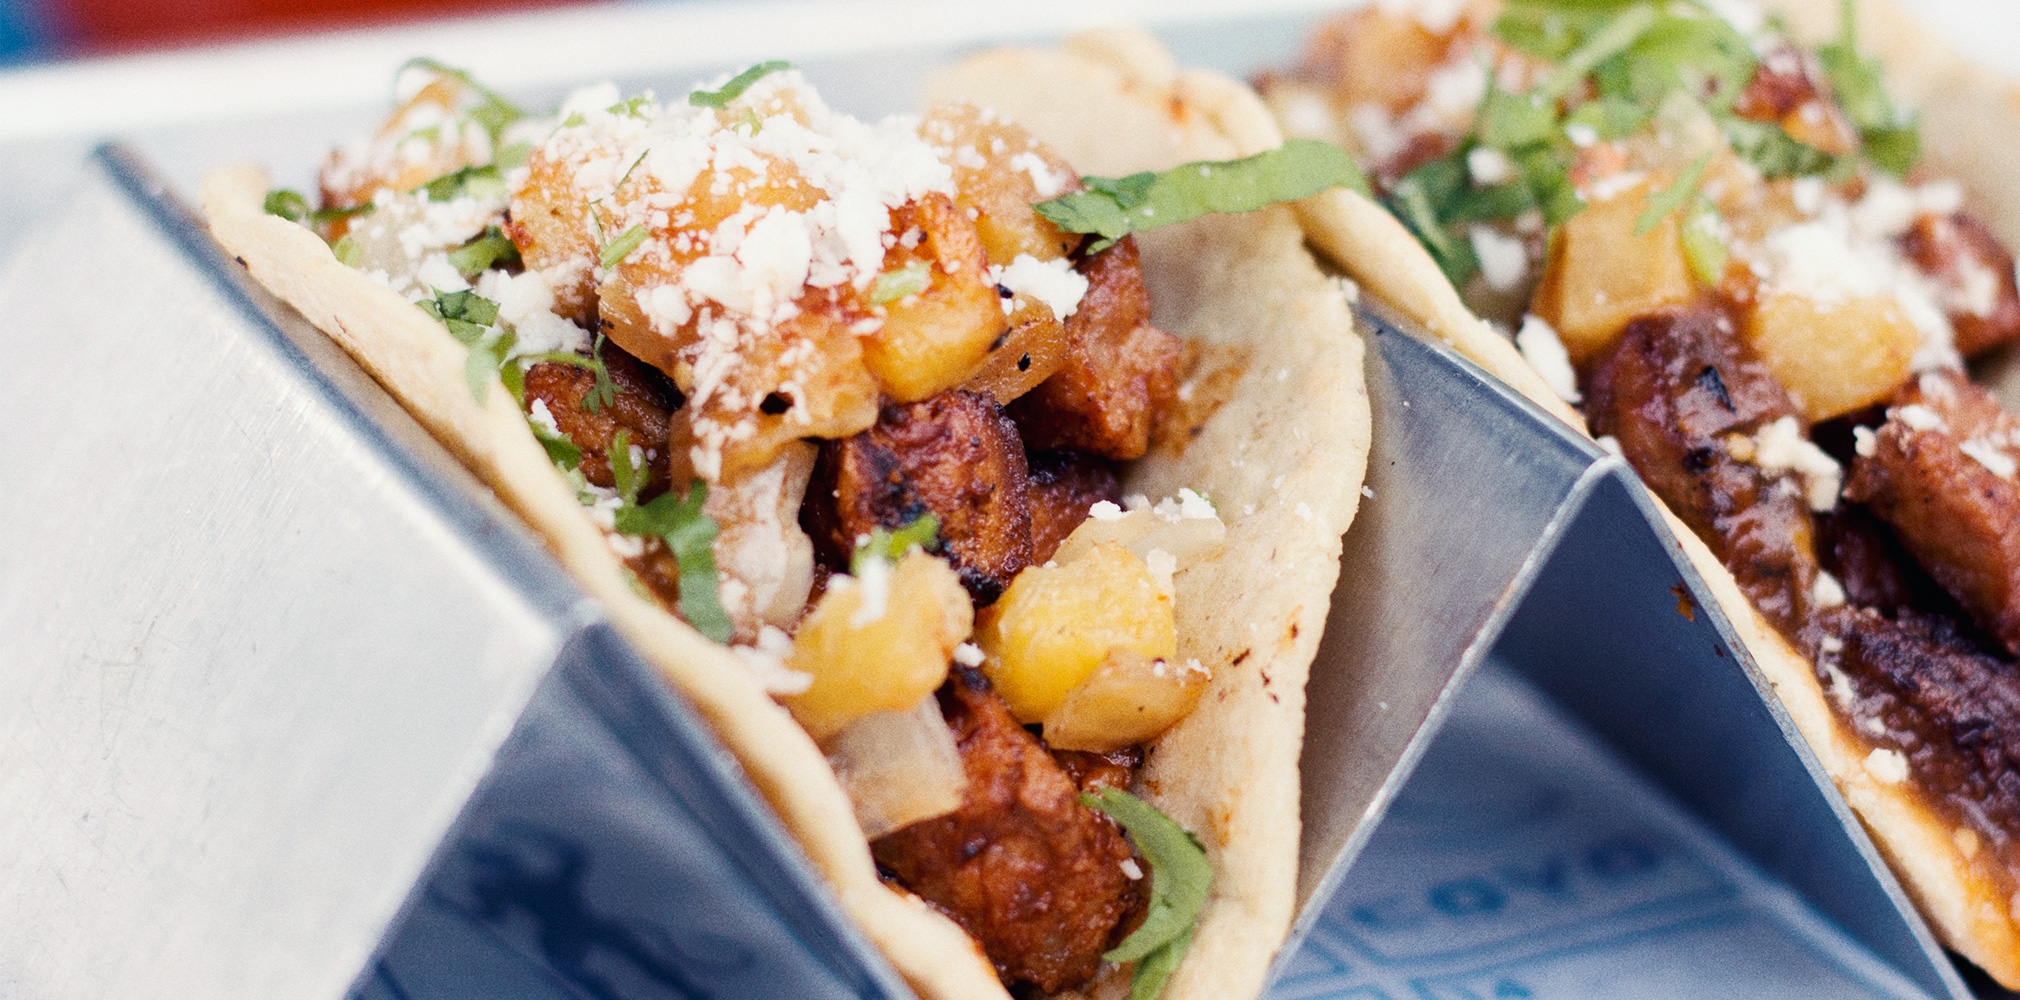 Tacos Al Pastor is One of the Best Foods in the World